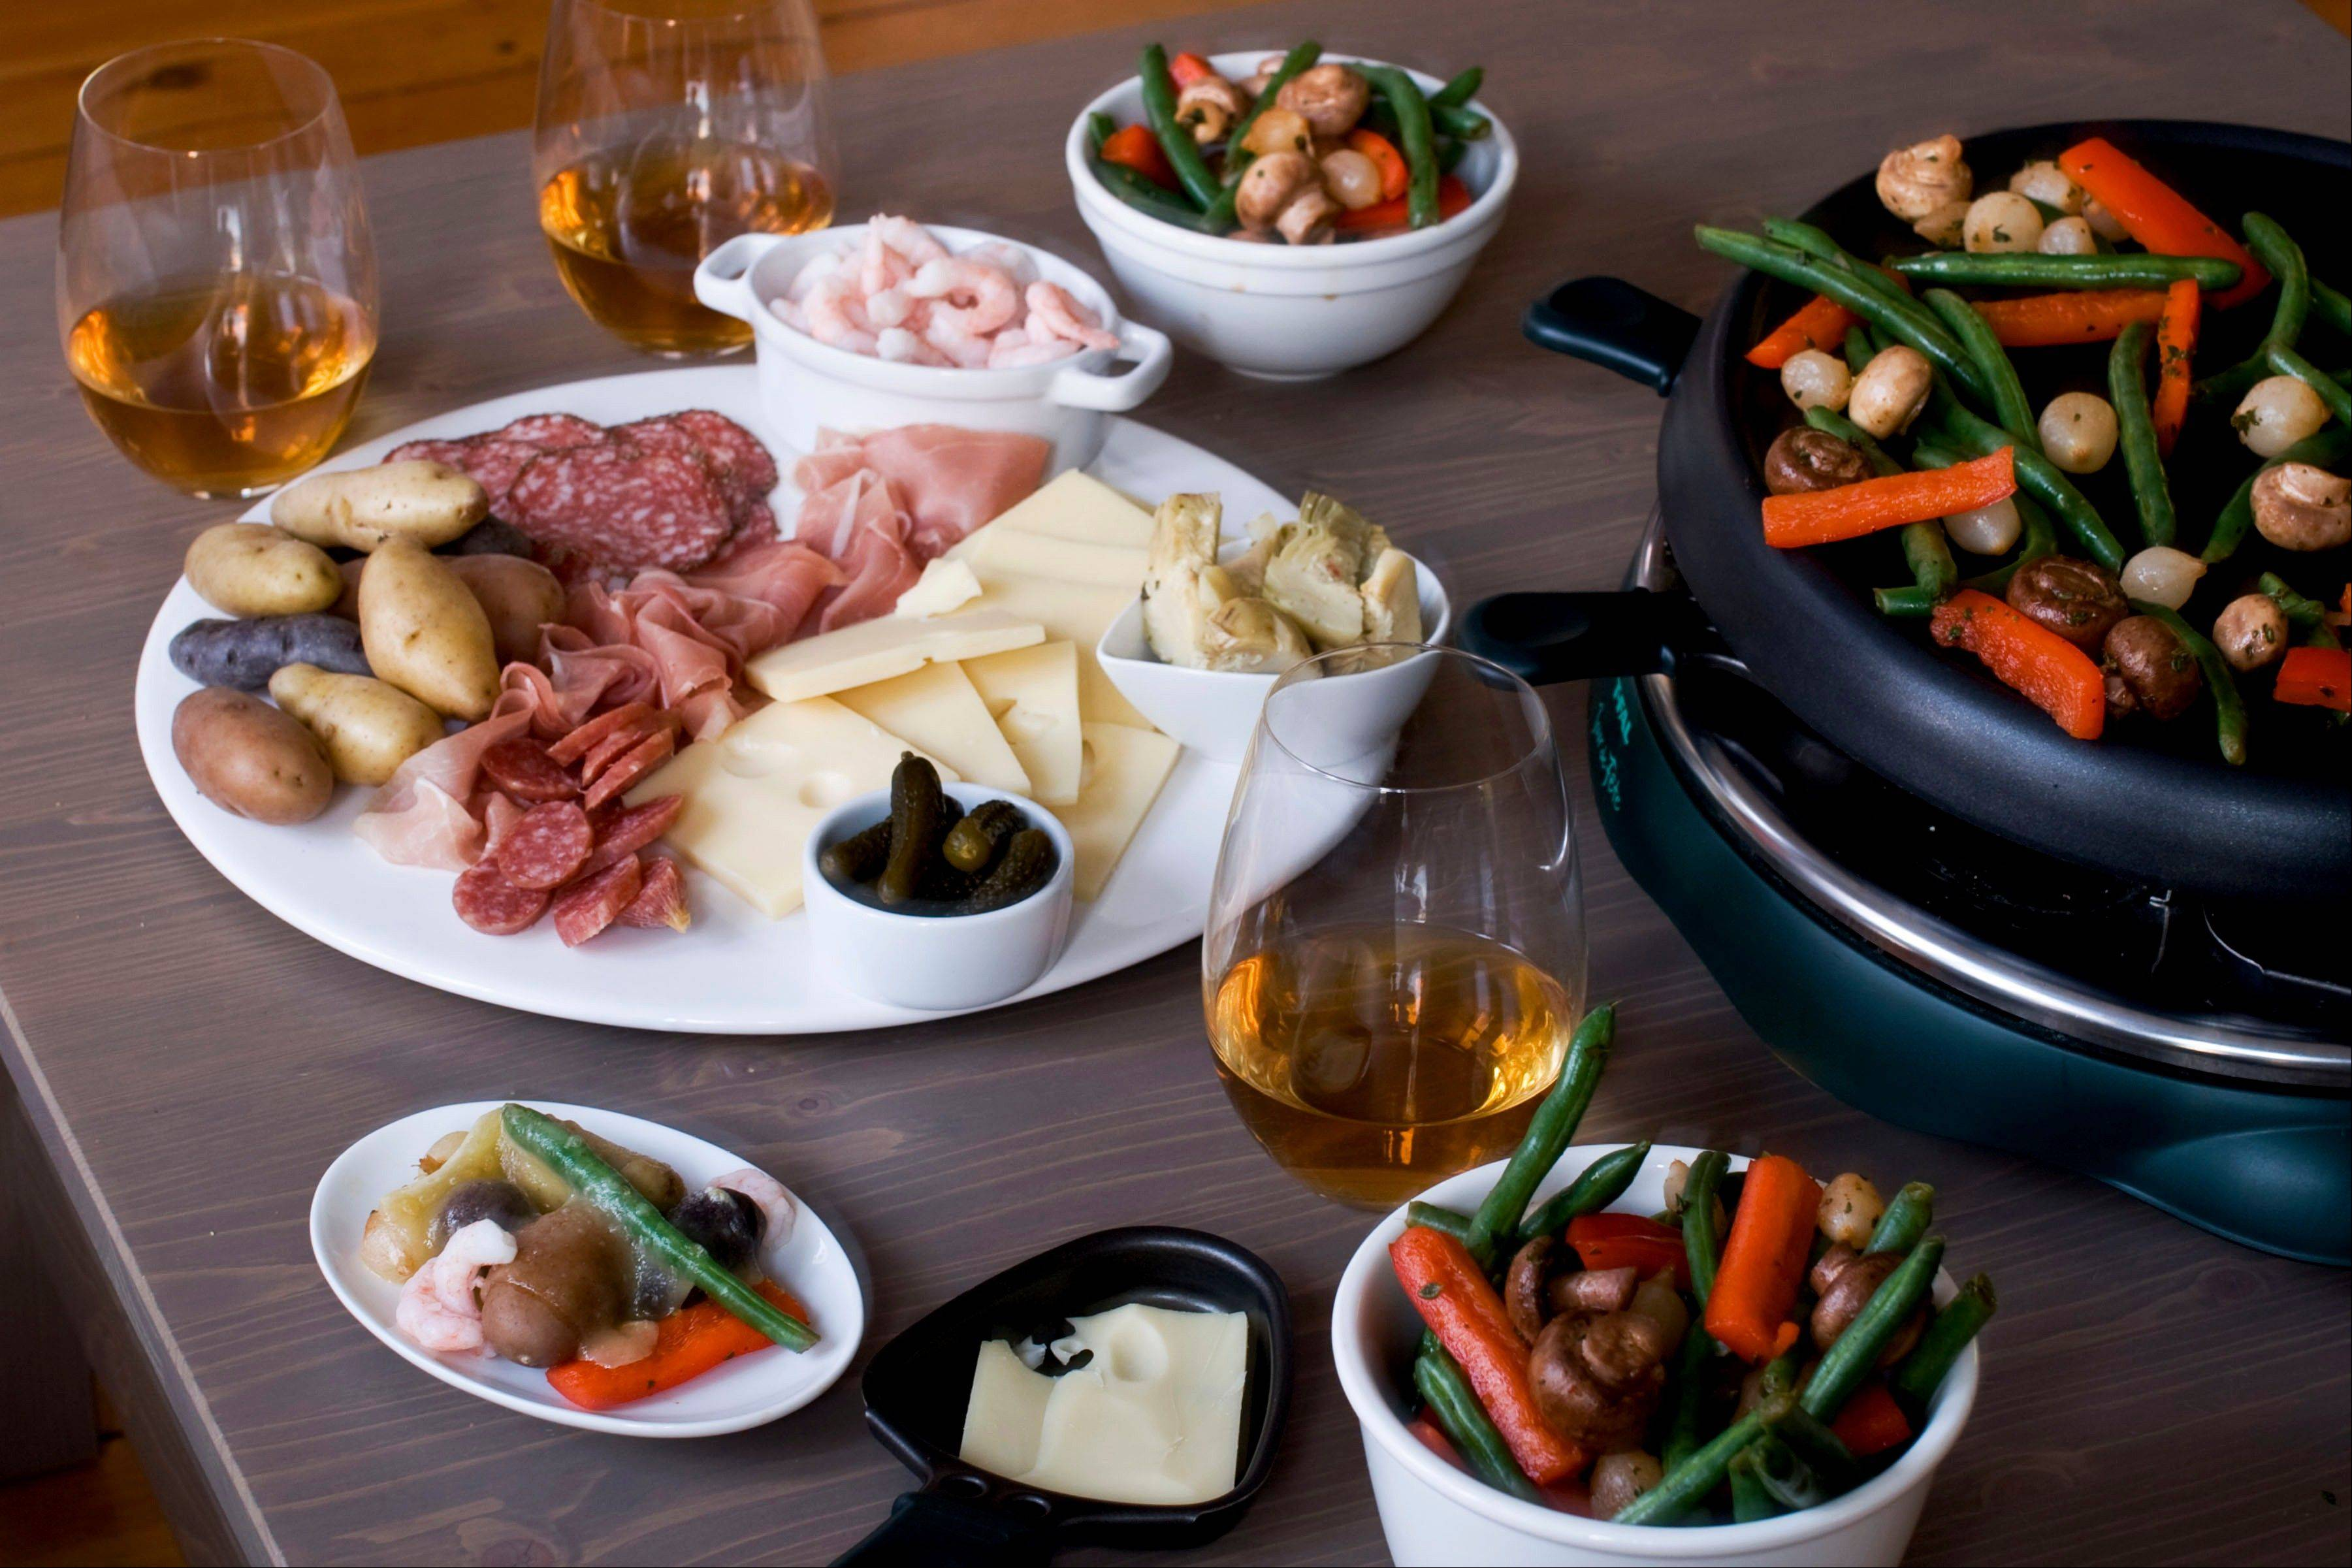 New Year's Eve is a perfect time to enjoy raclette with family and friends.